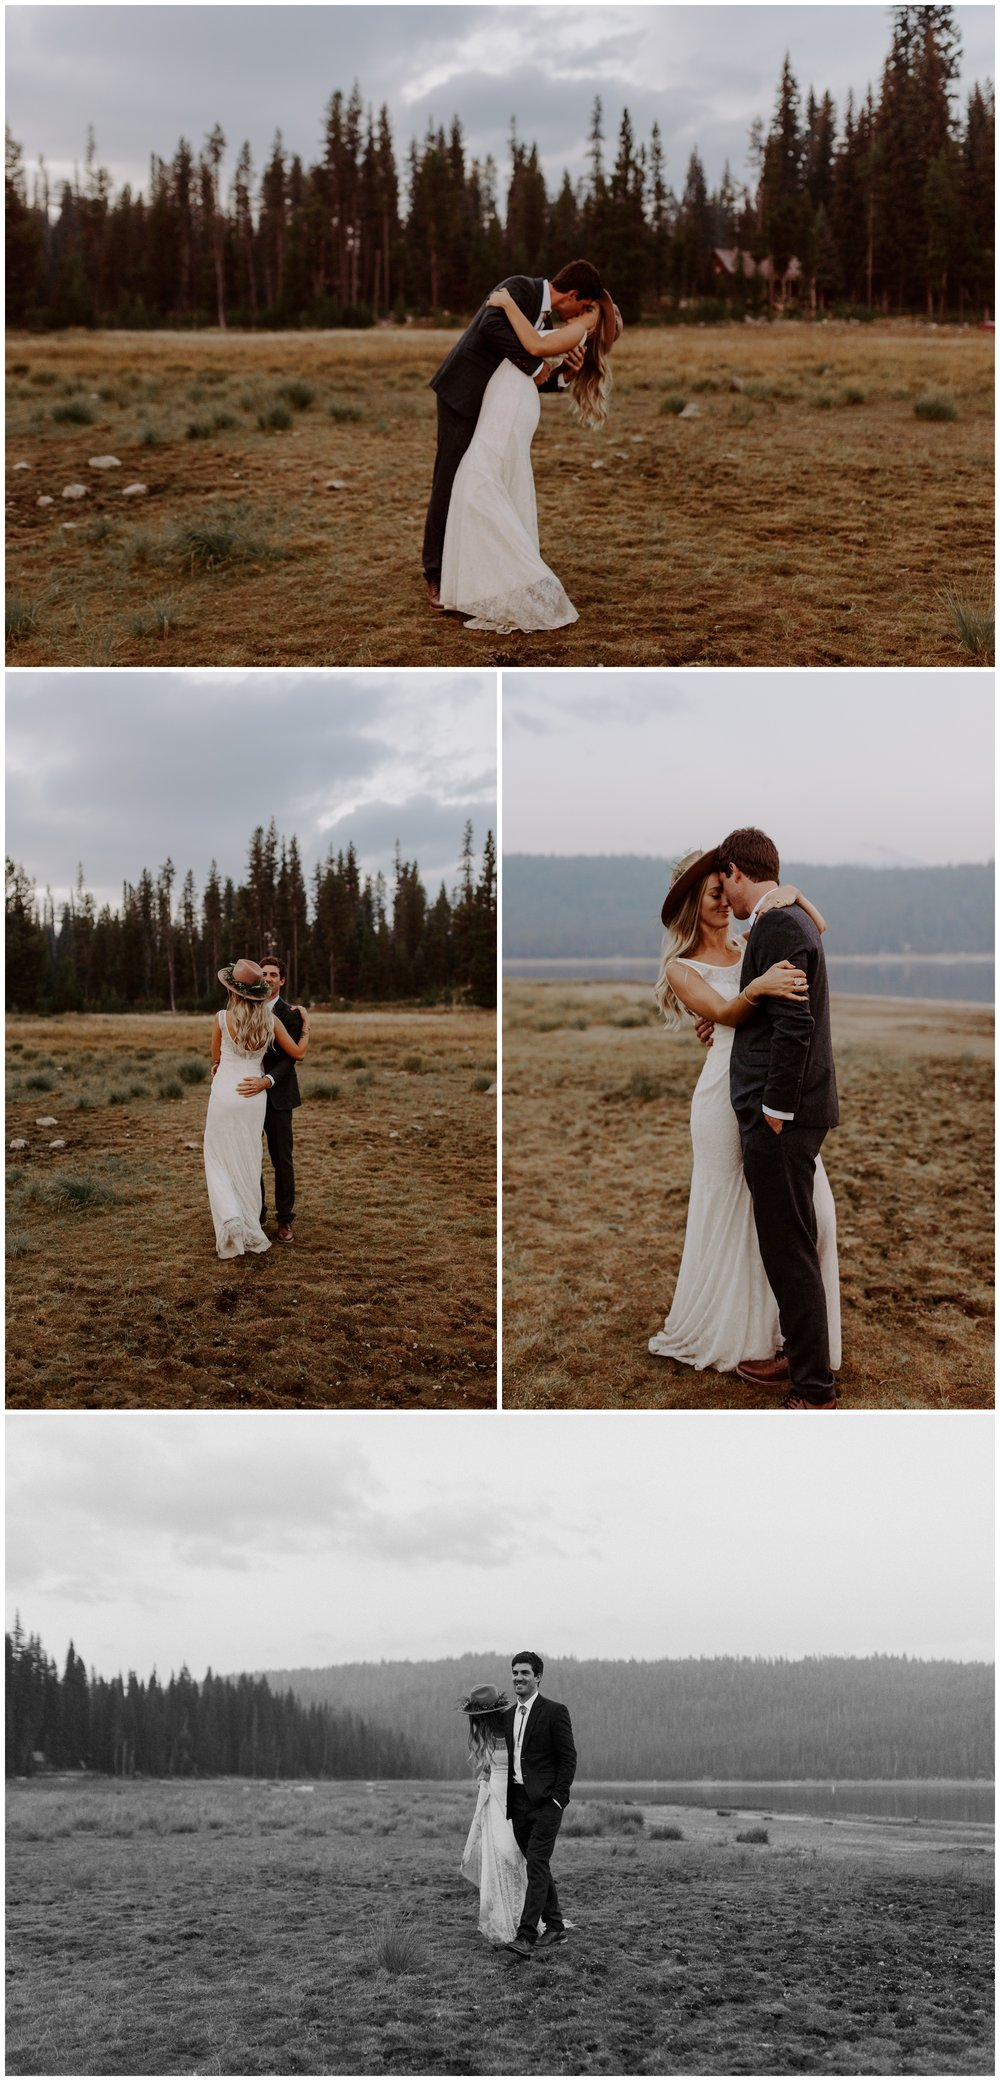 Bend Boho Campsite Wedding Eastern Oregon - Jessica Heron Images_0095.jpg